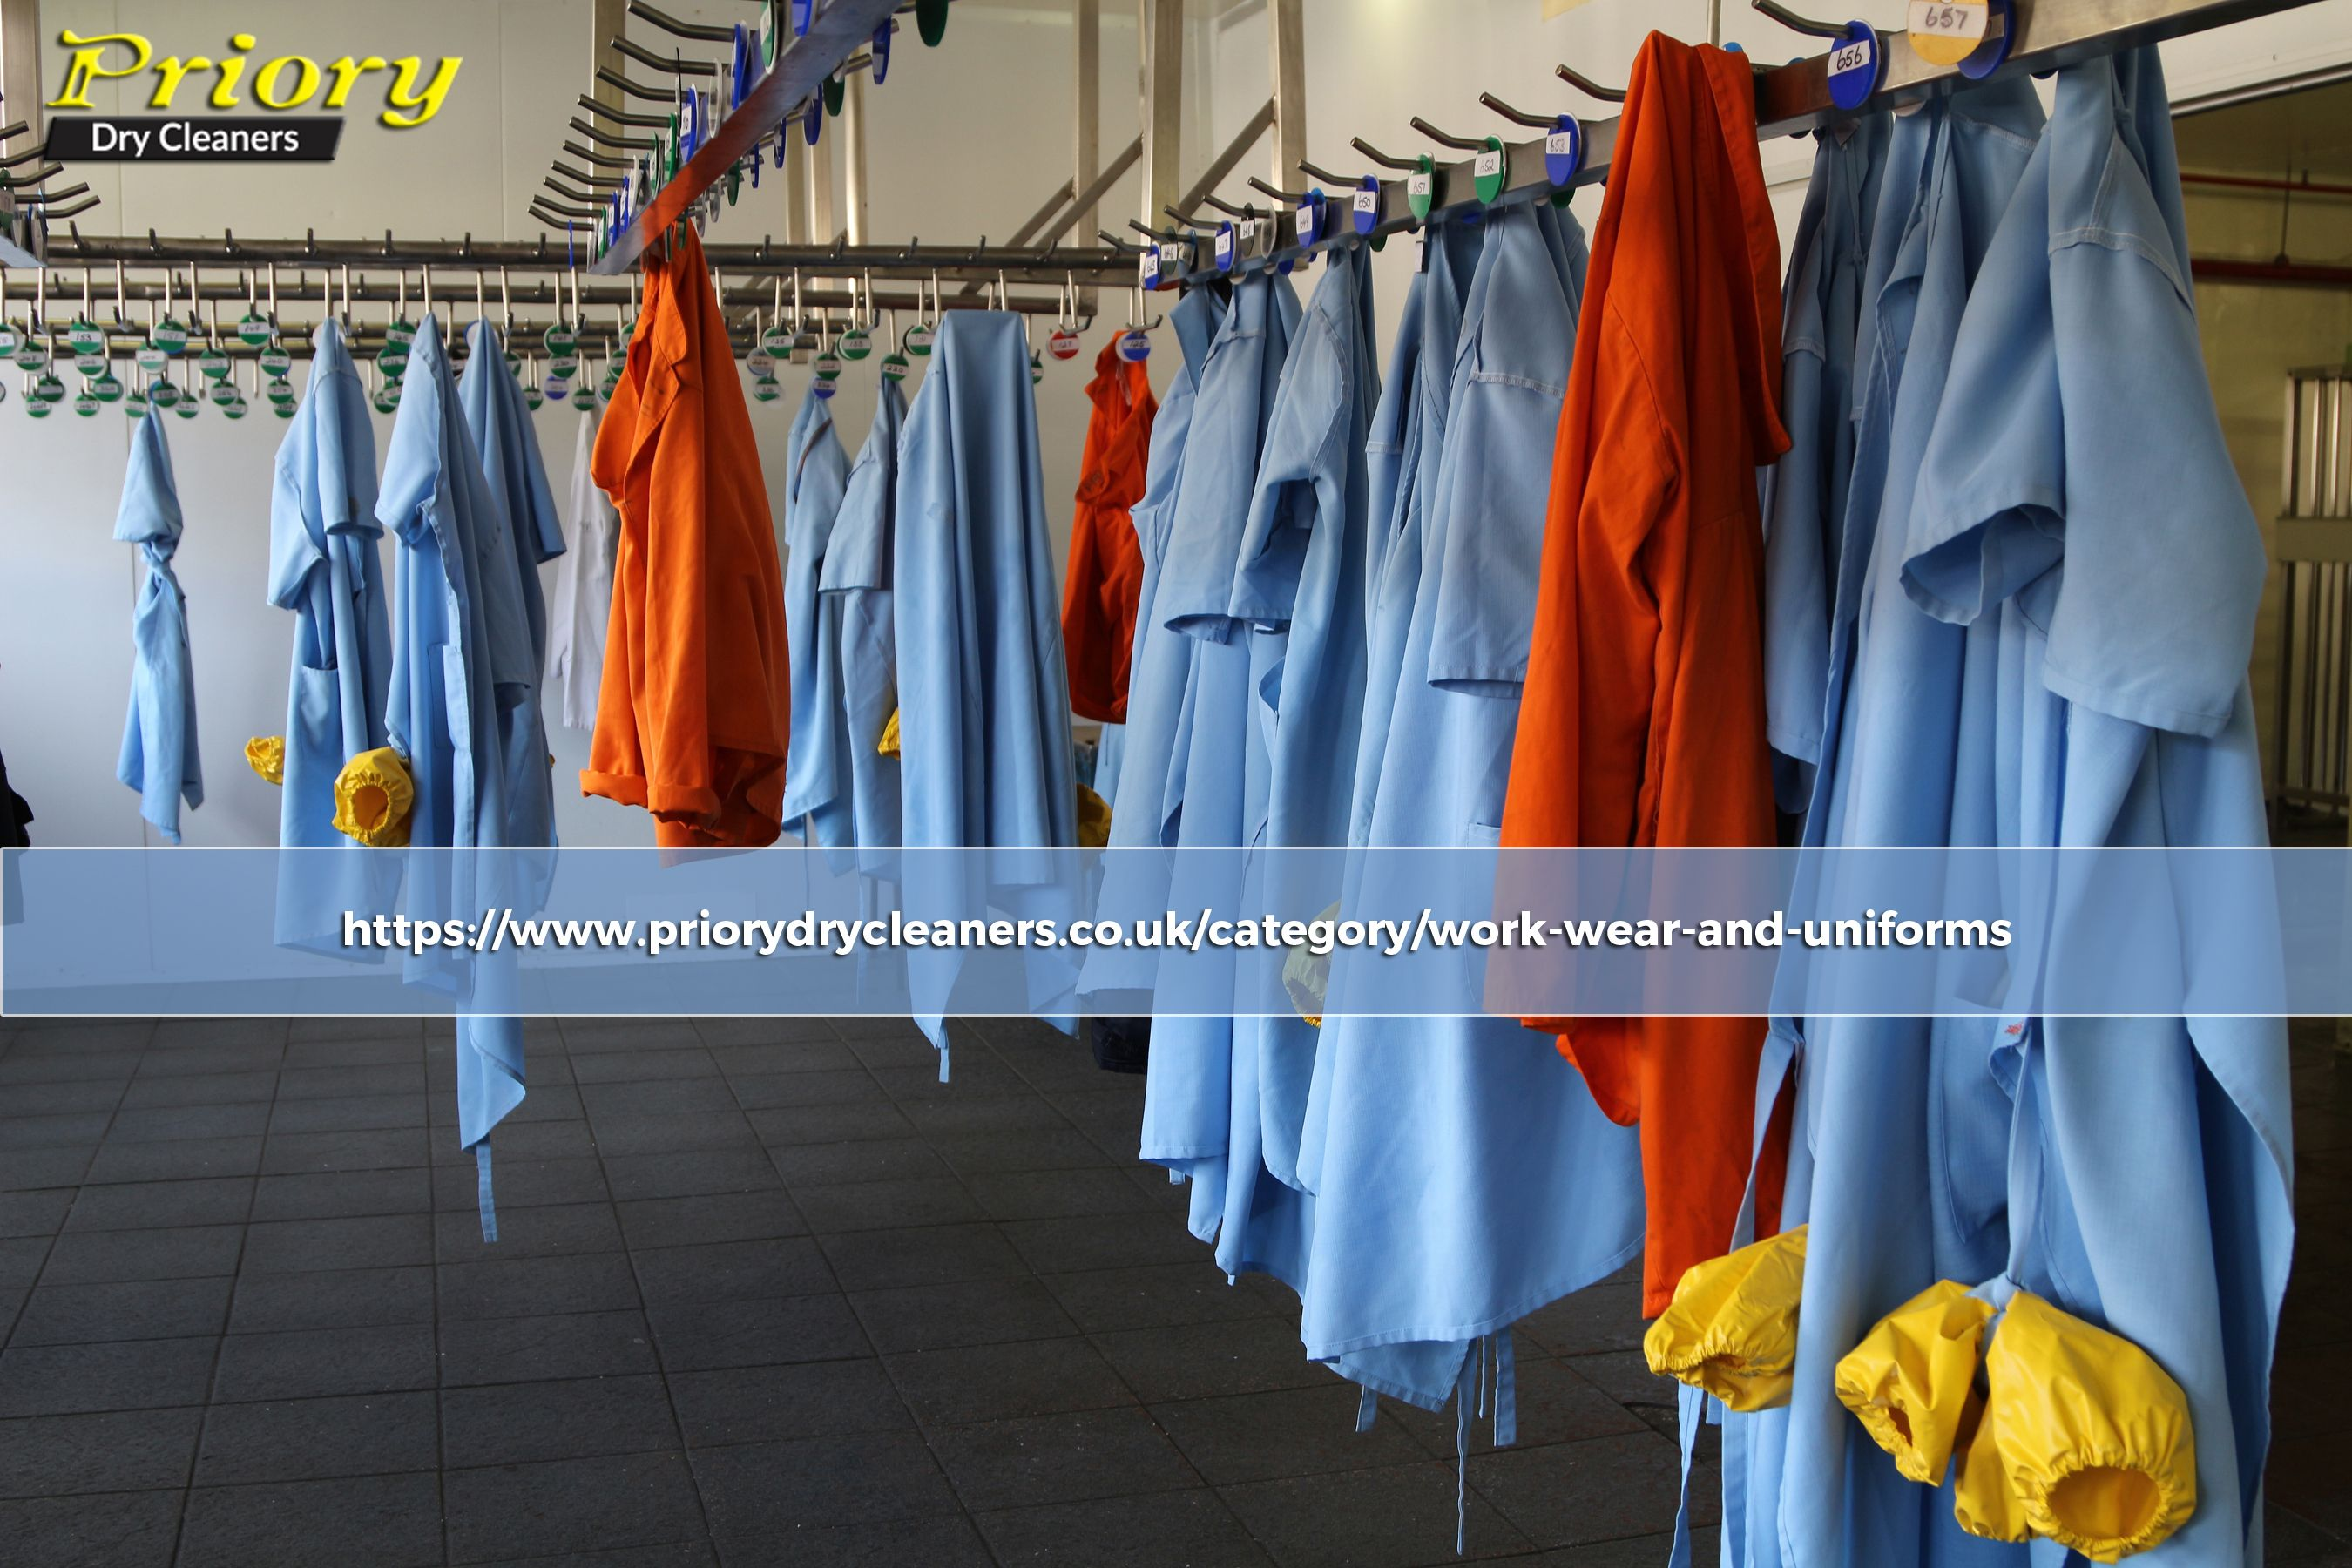 Pin by Tip Top Dry Cleaners&Laundry on Dry Cleaning & Laundry | Tip ...